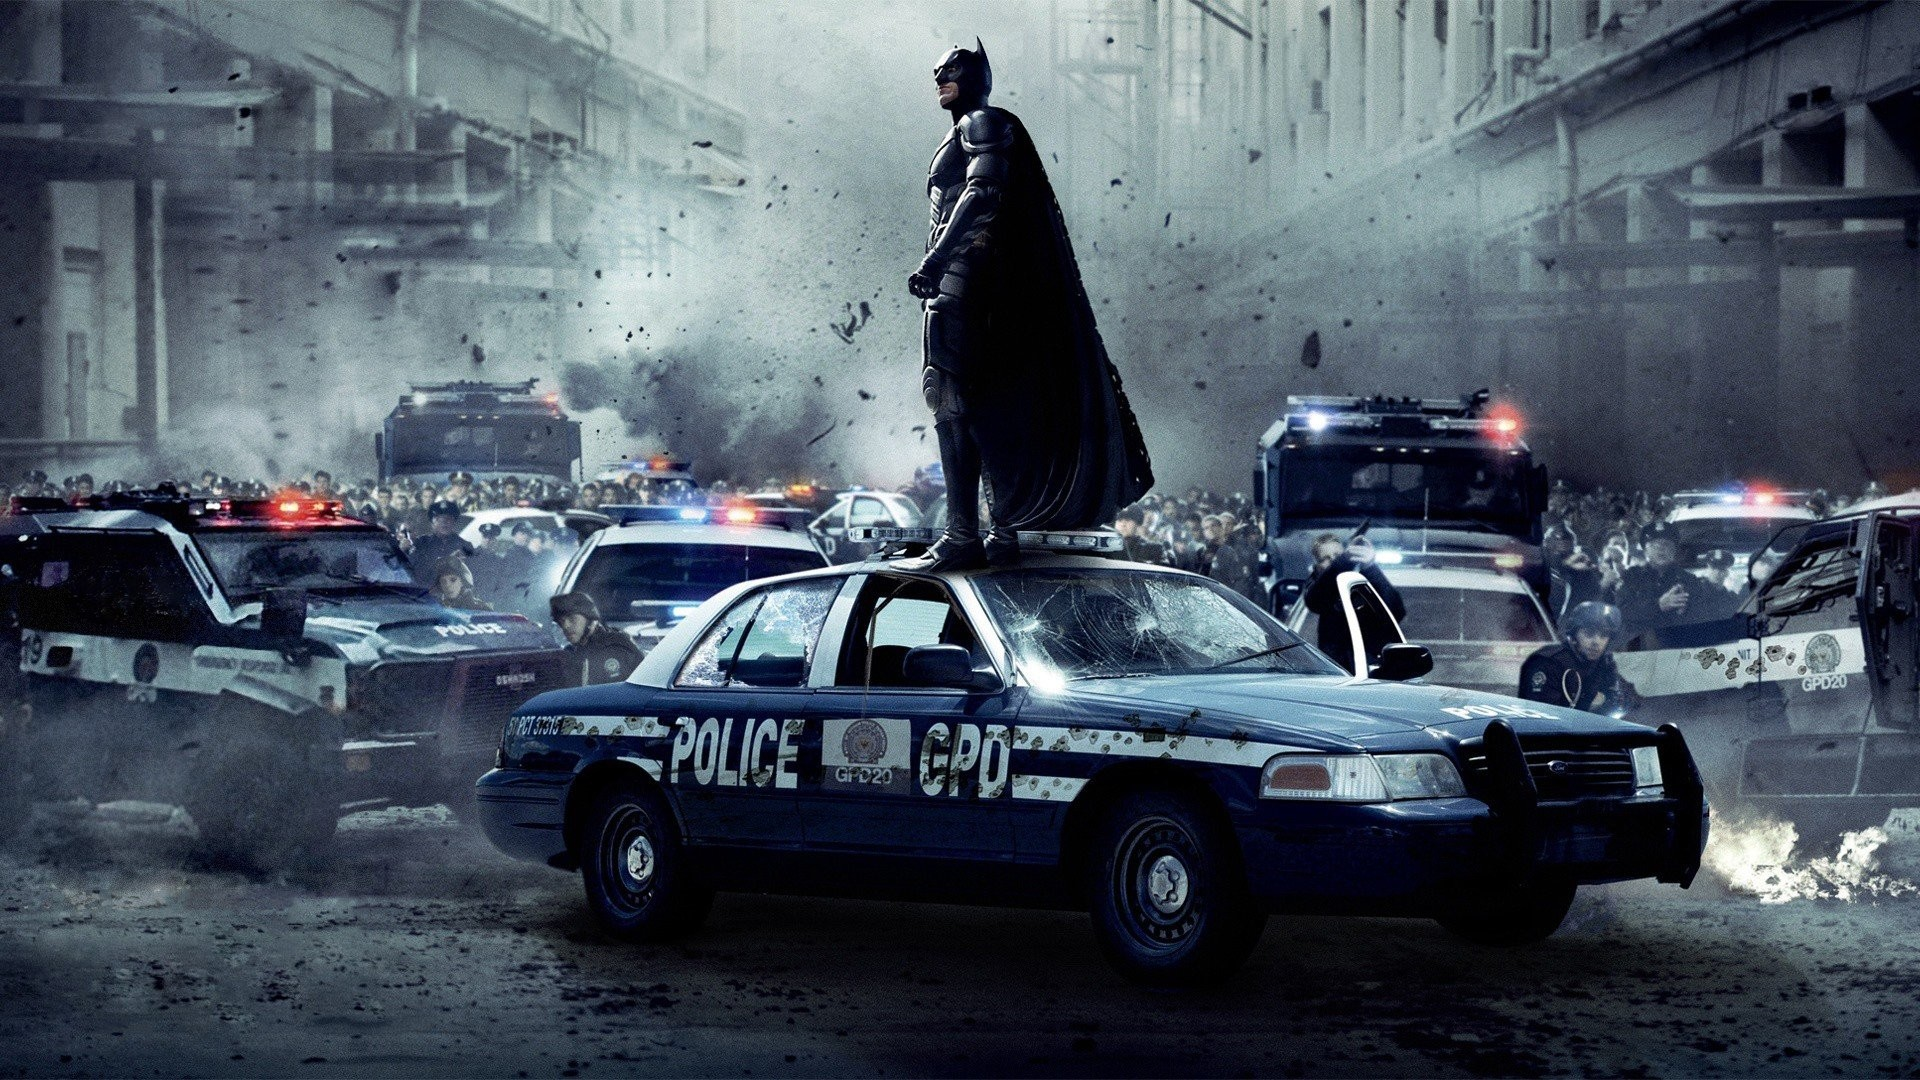 1920x1080 Batman The Dark Knight Rises Cars Explosions Movies Police Cruiser